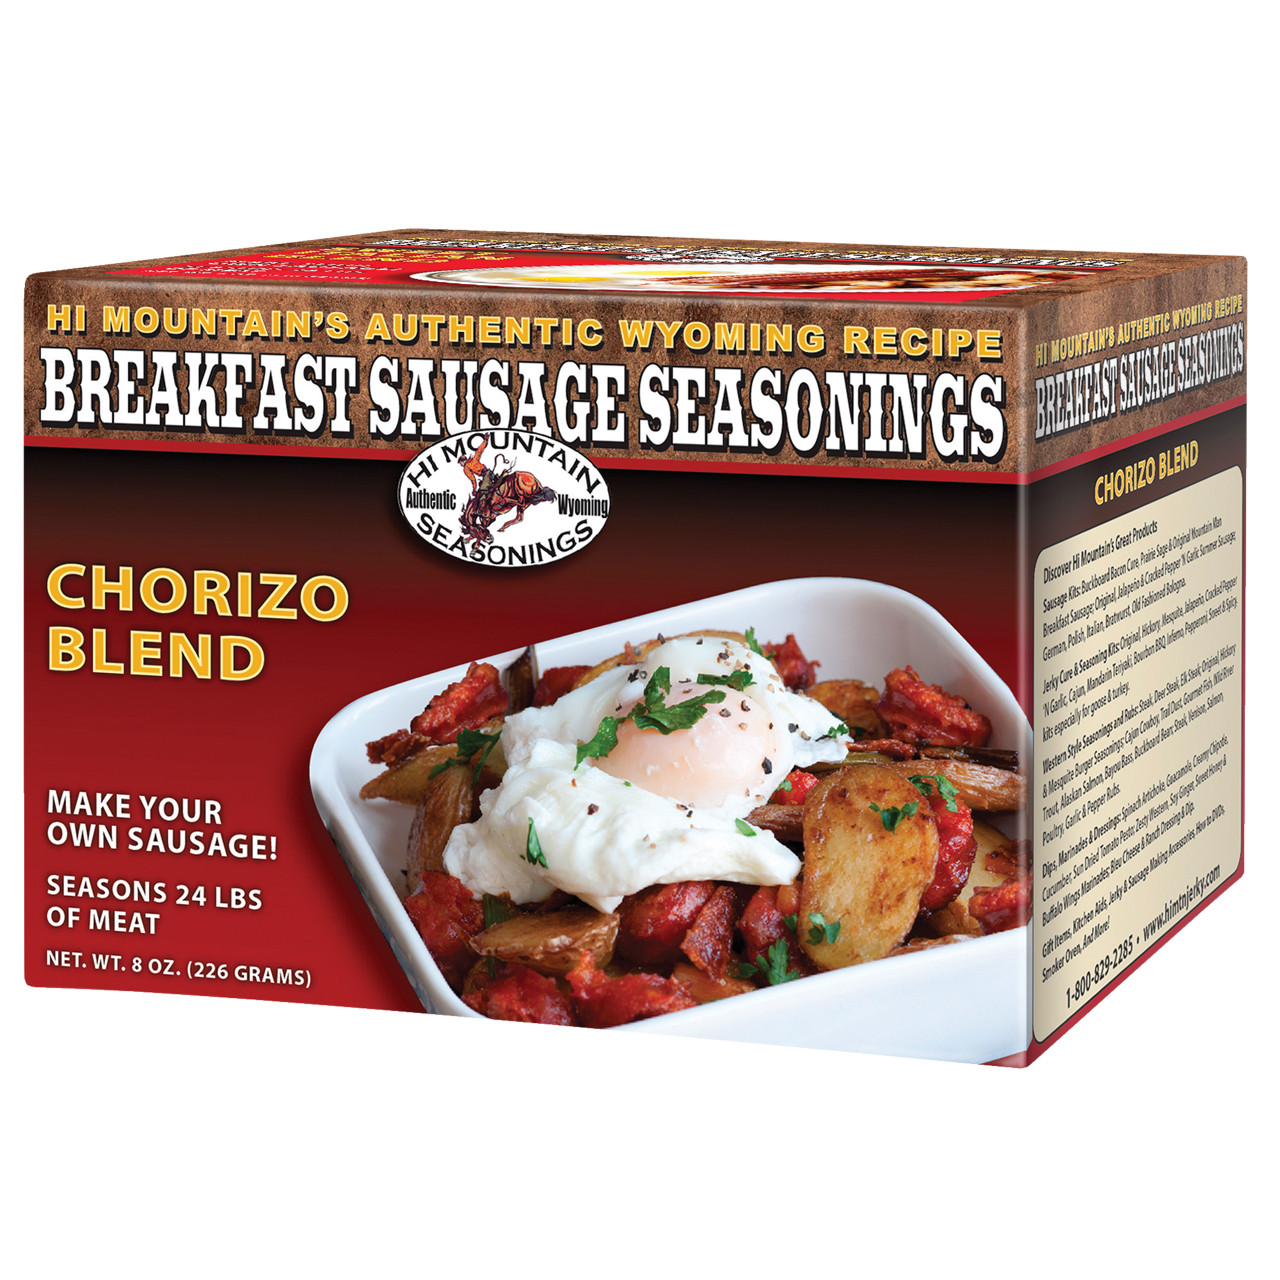 Chorizo Blend Breakfast Sausage Seasoning